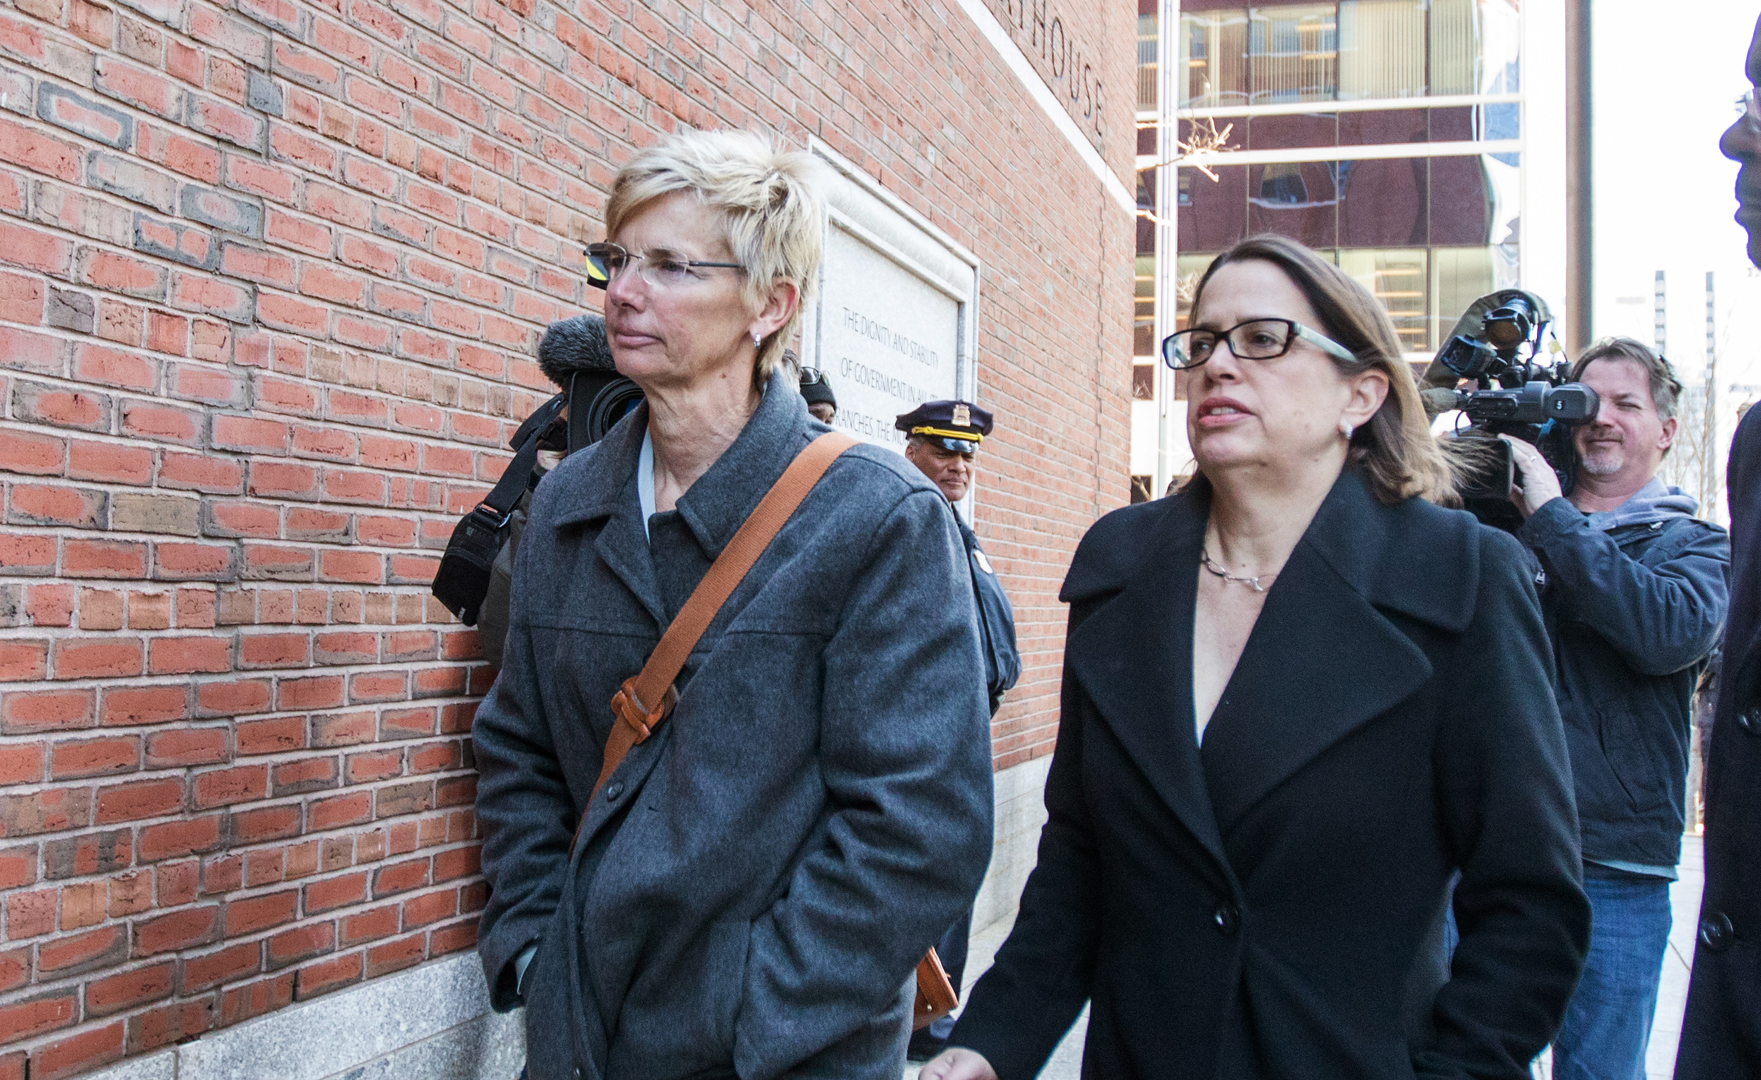 Donna Heinel, left, former senior associate athletic director at USC for her arraignment at Boston Federal Court on March 25, 2019 in Boston. (Credit: Scott Eisen/Getty Images)